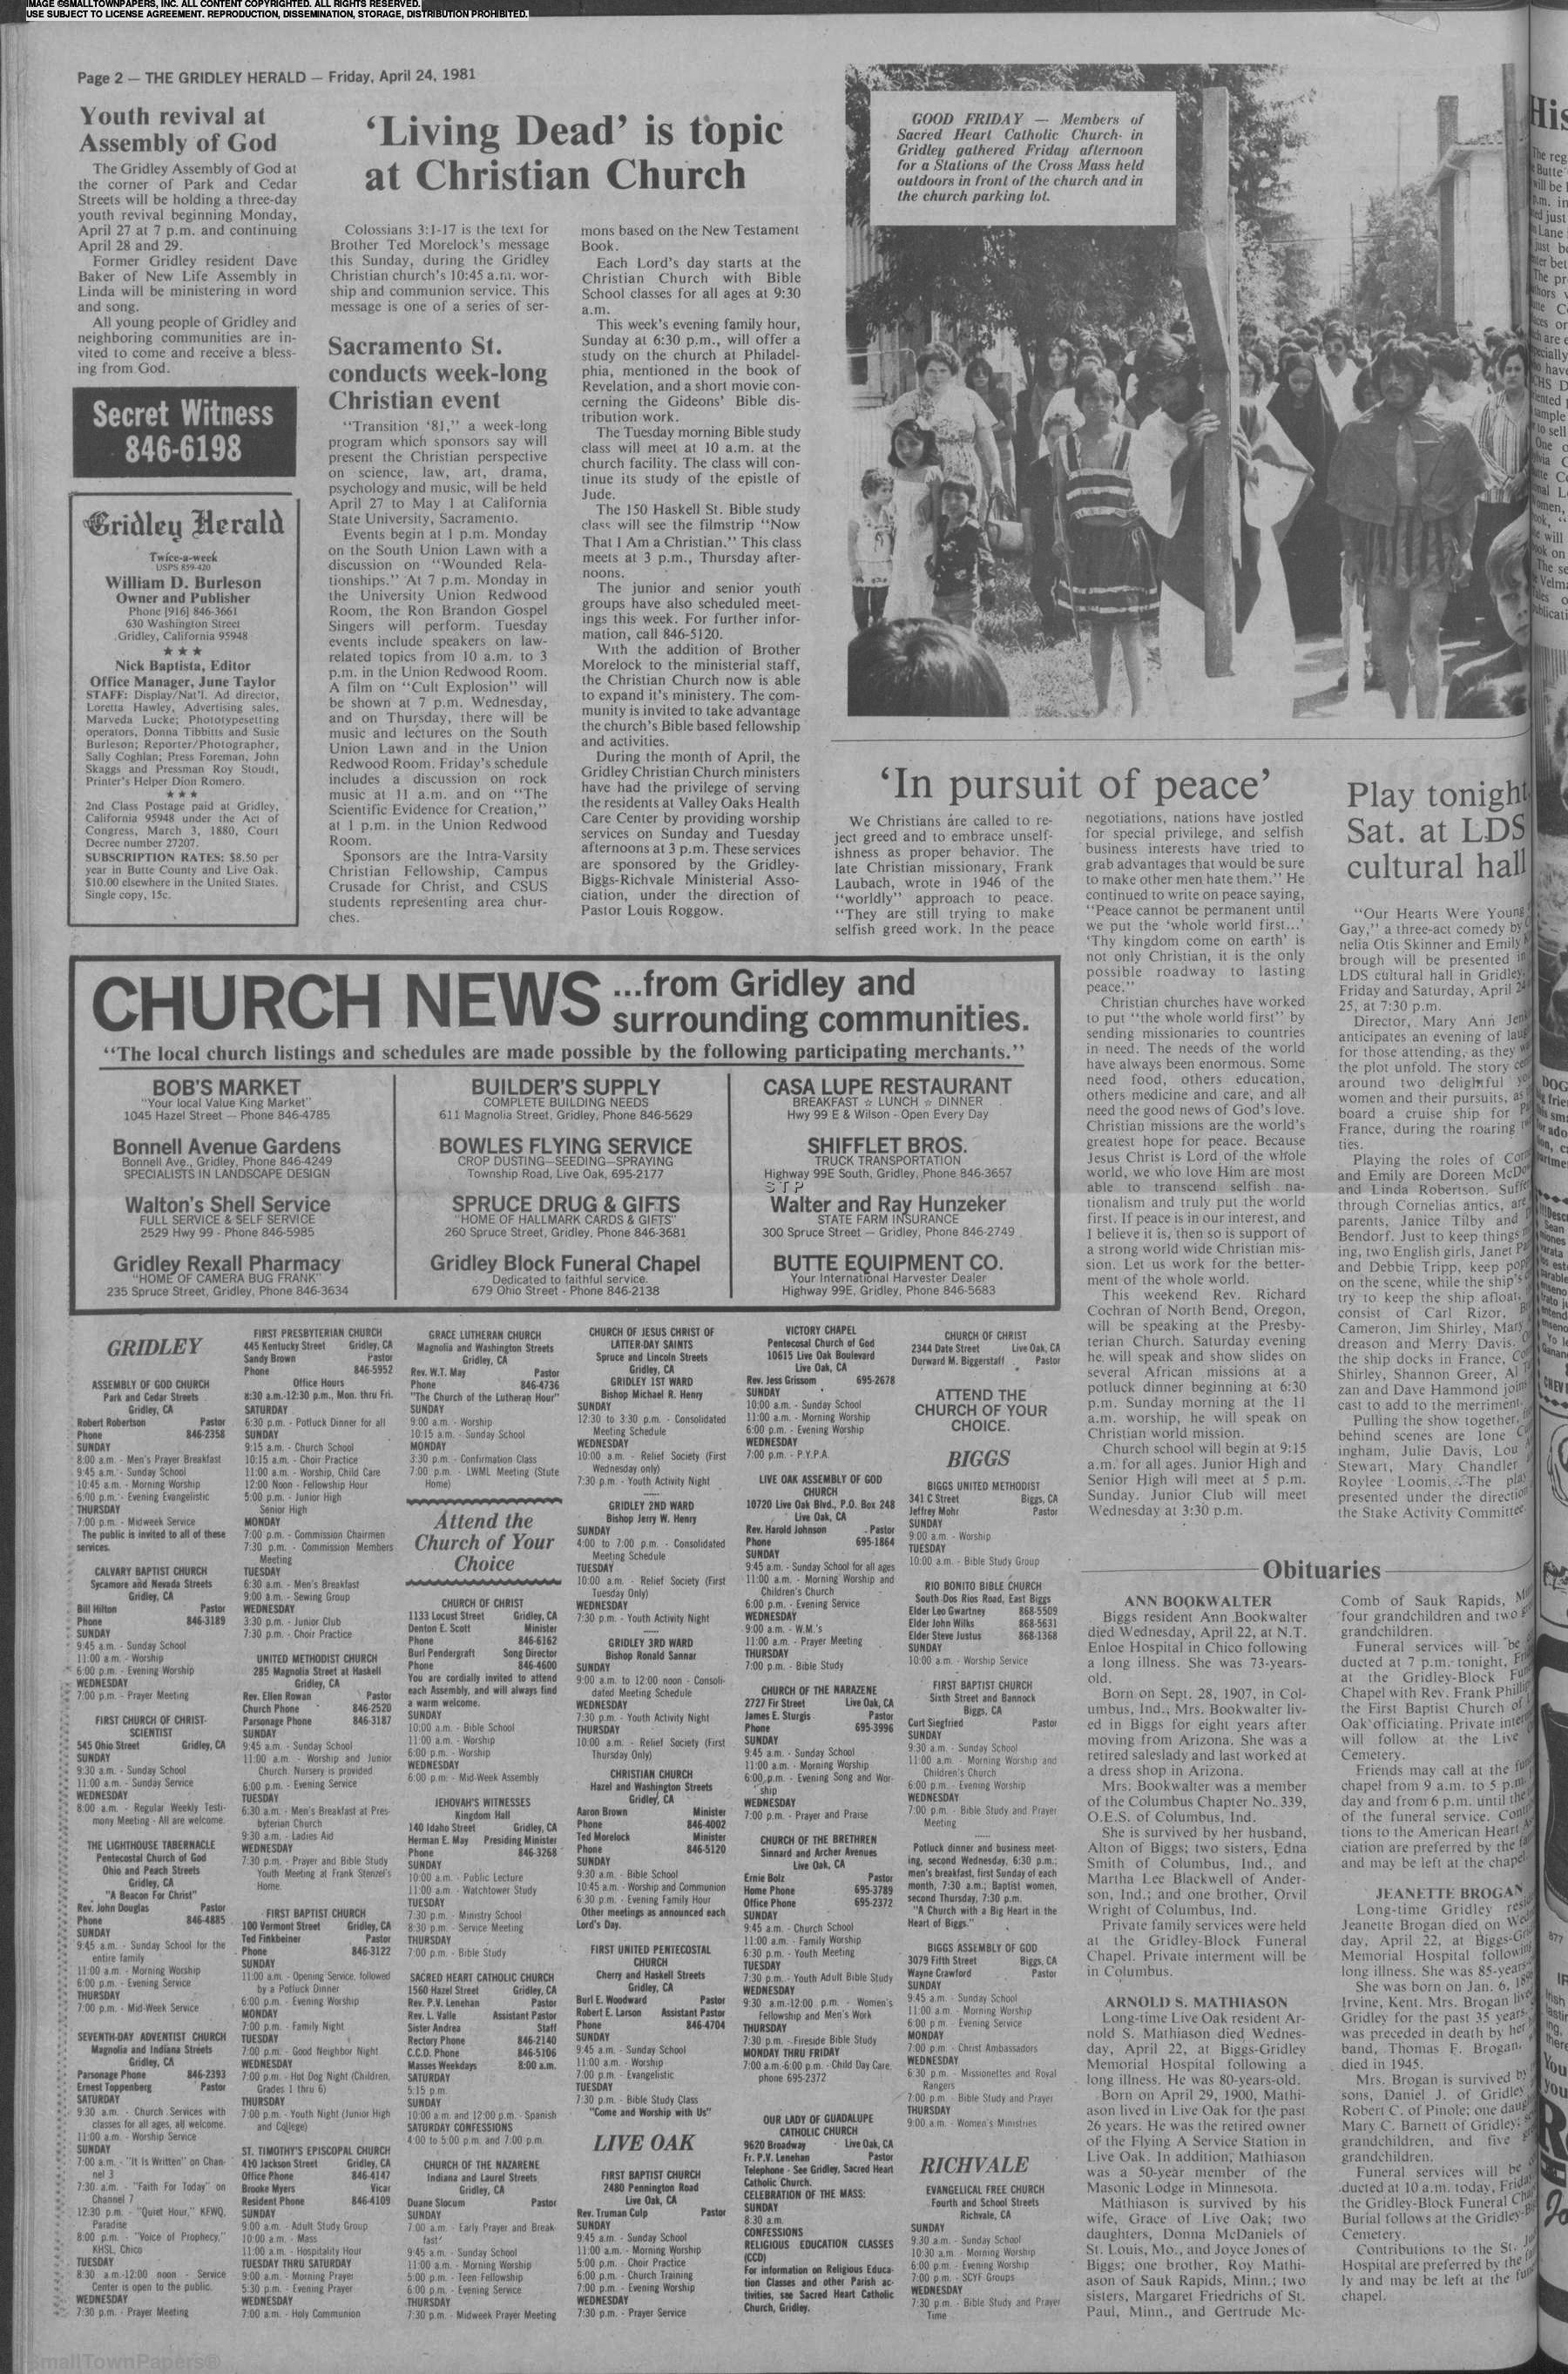 The Gridley Herald April 24, 1981: Page 2